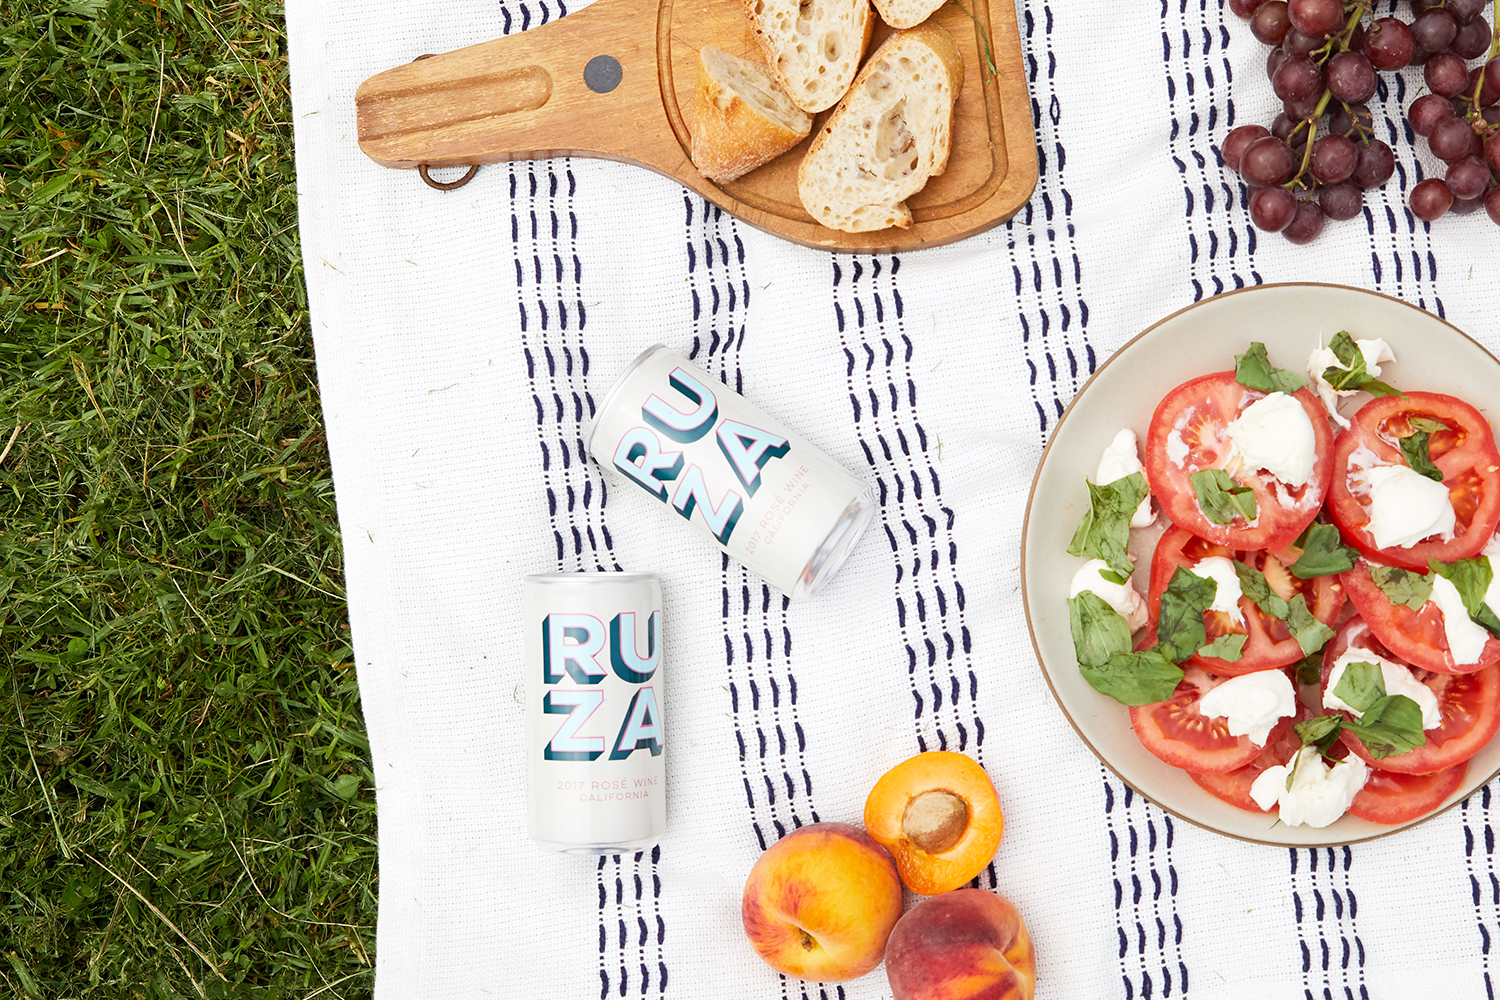 Winc's Go-To Summer Entertaining Tips